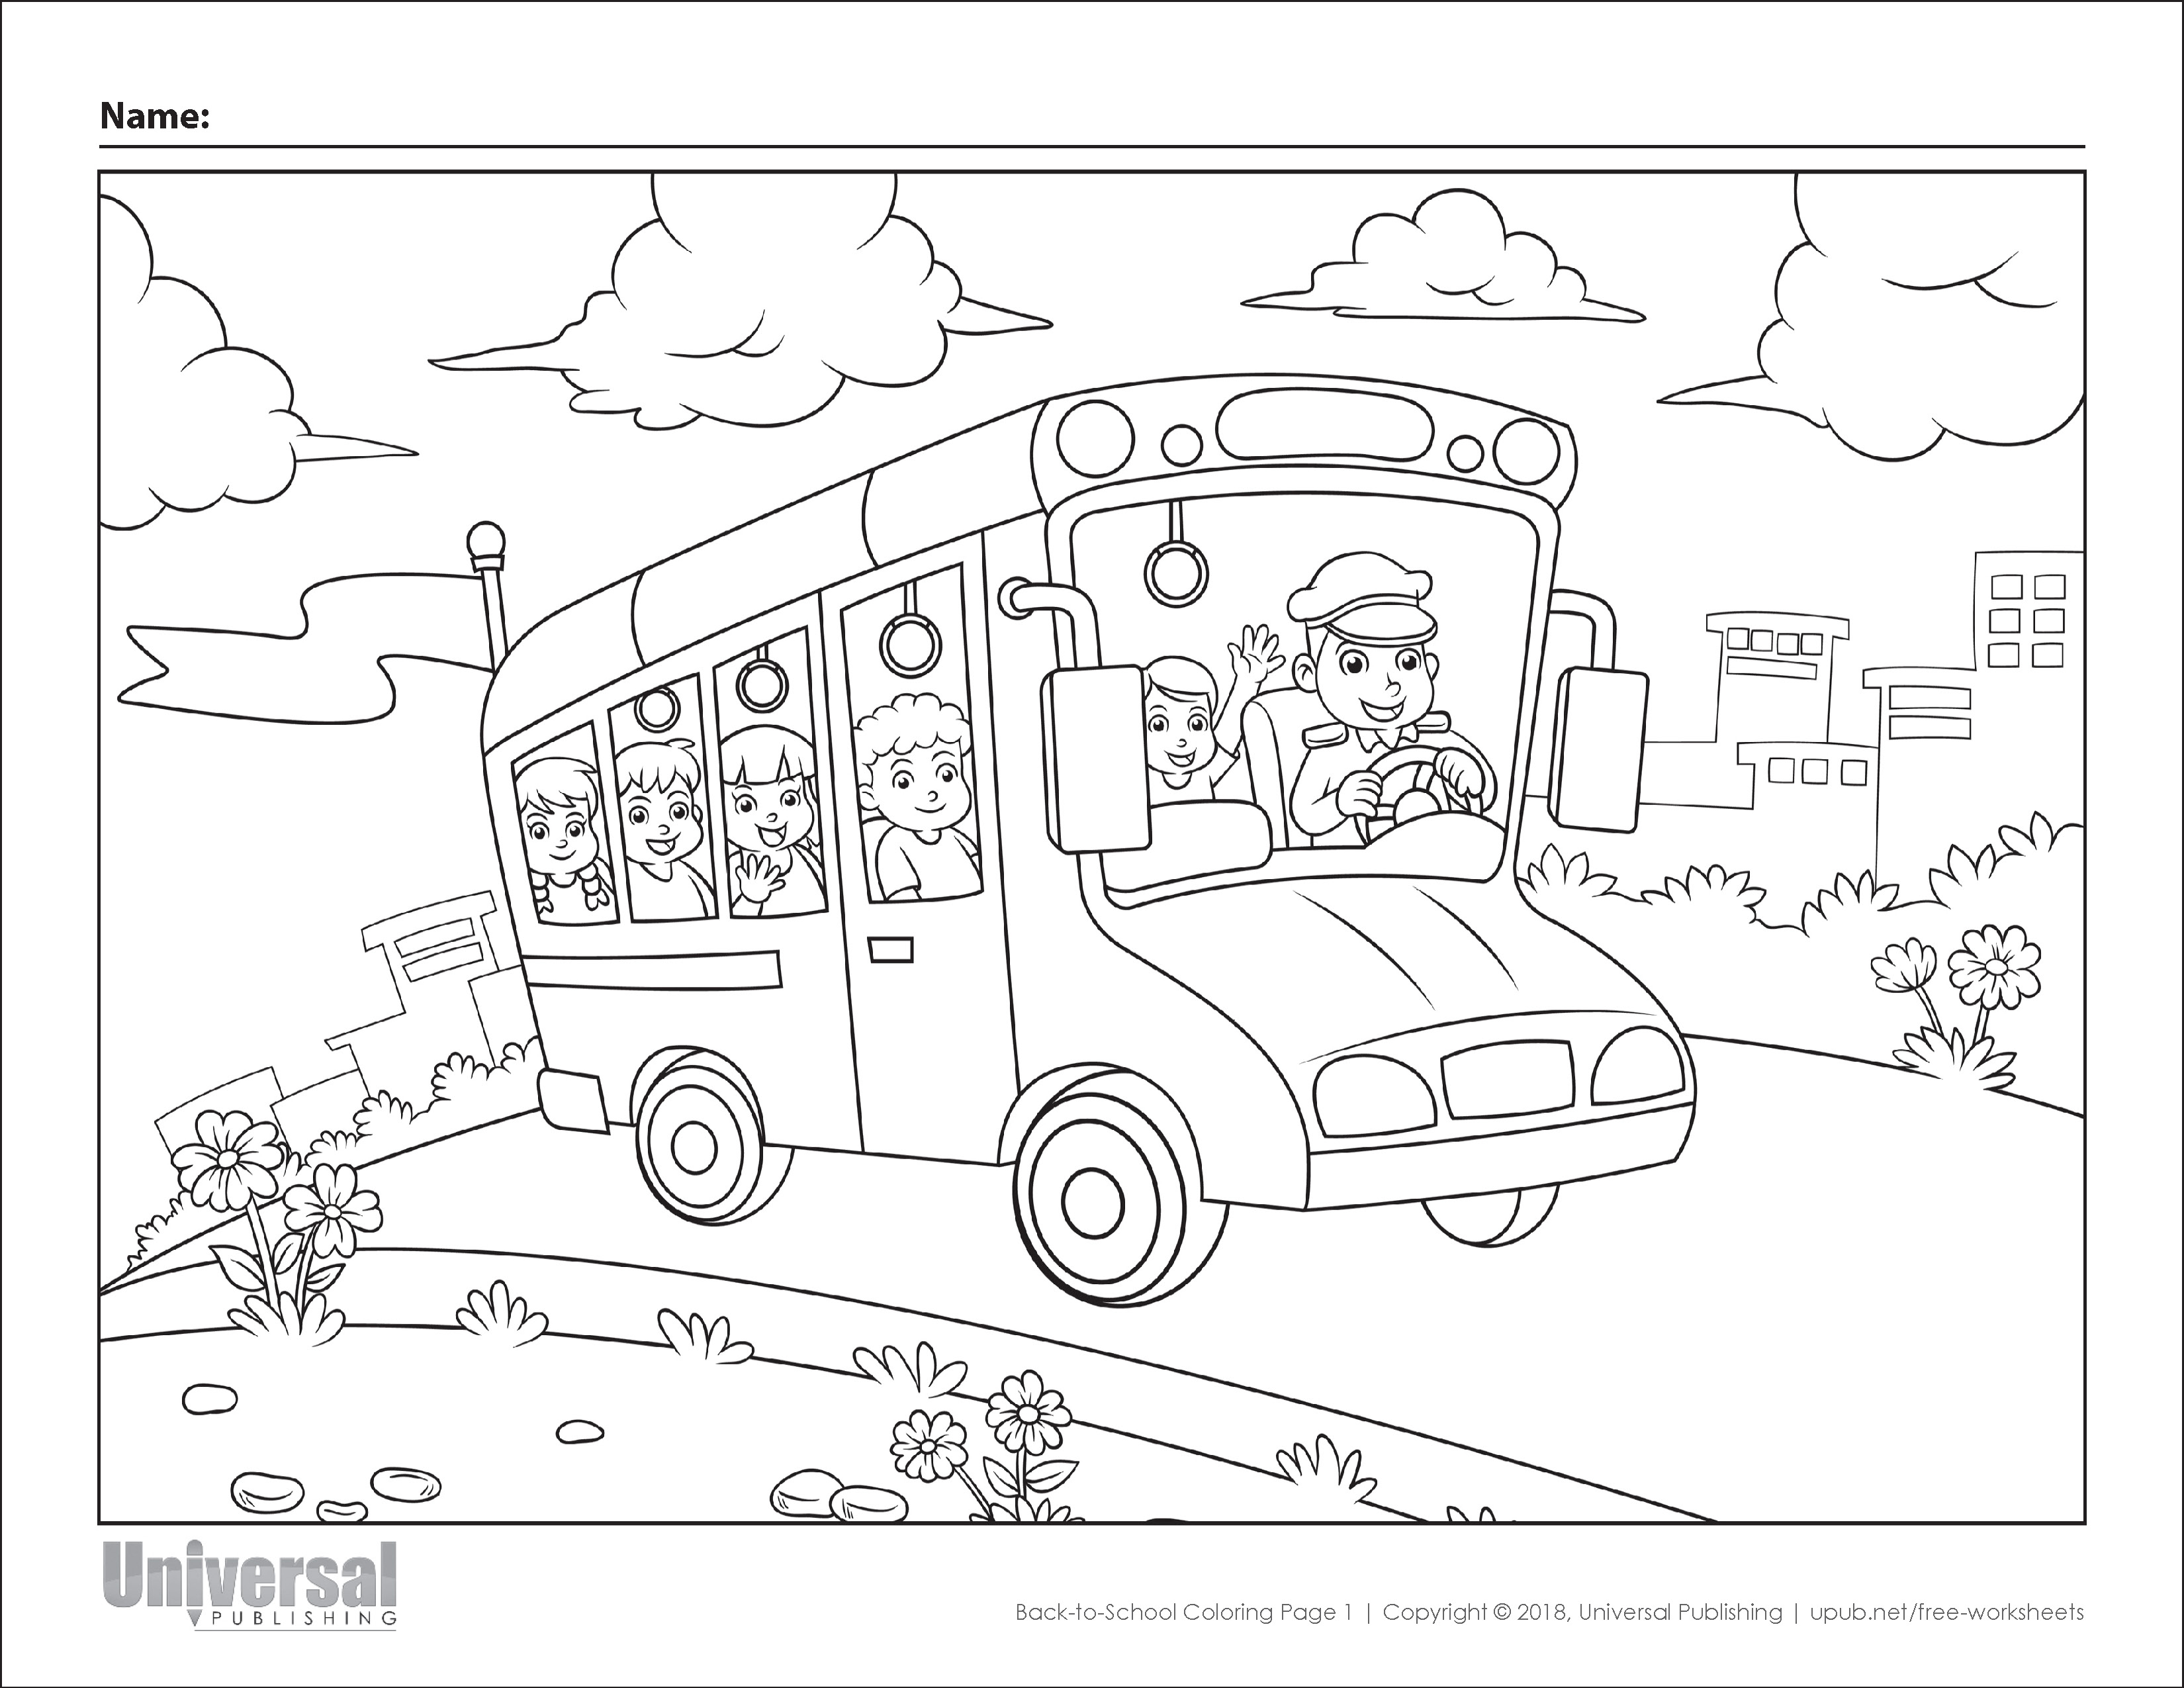 School Coloring Pages Back To School Coloring Pages Free Printables Universal Publishing